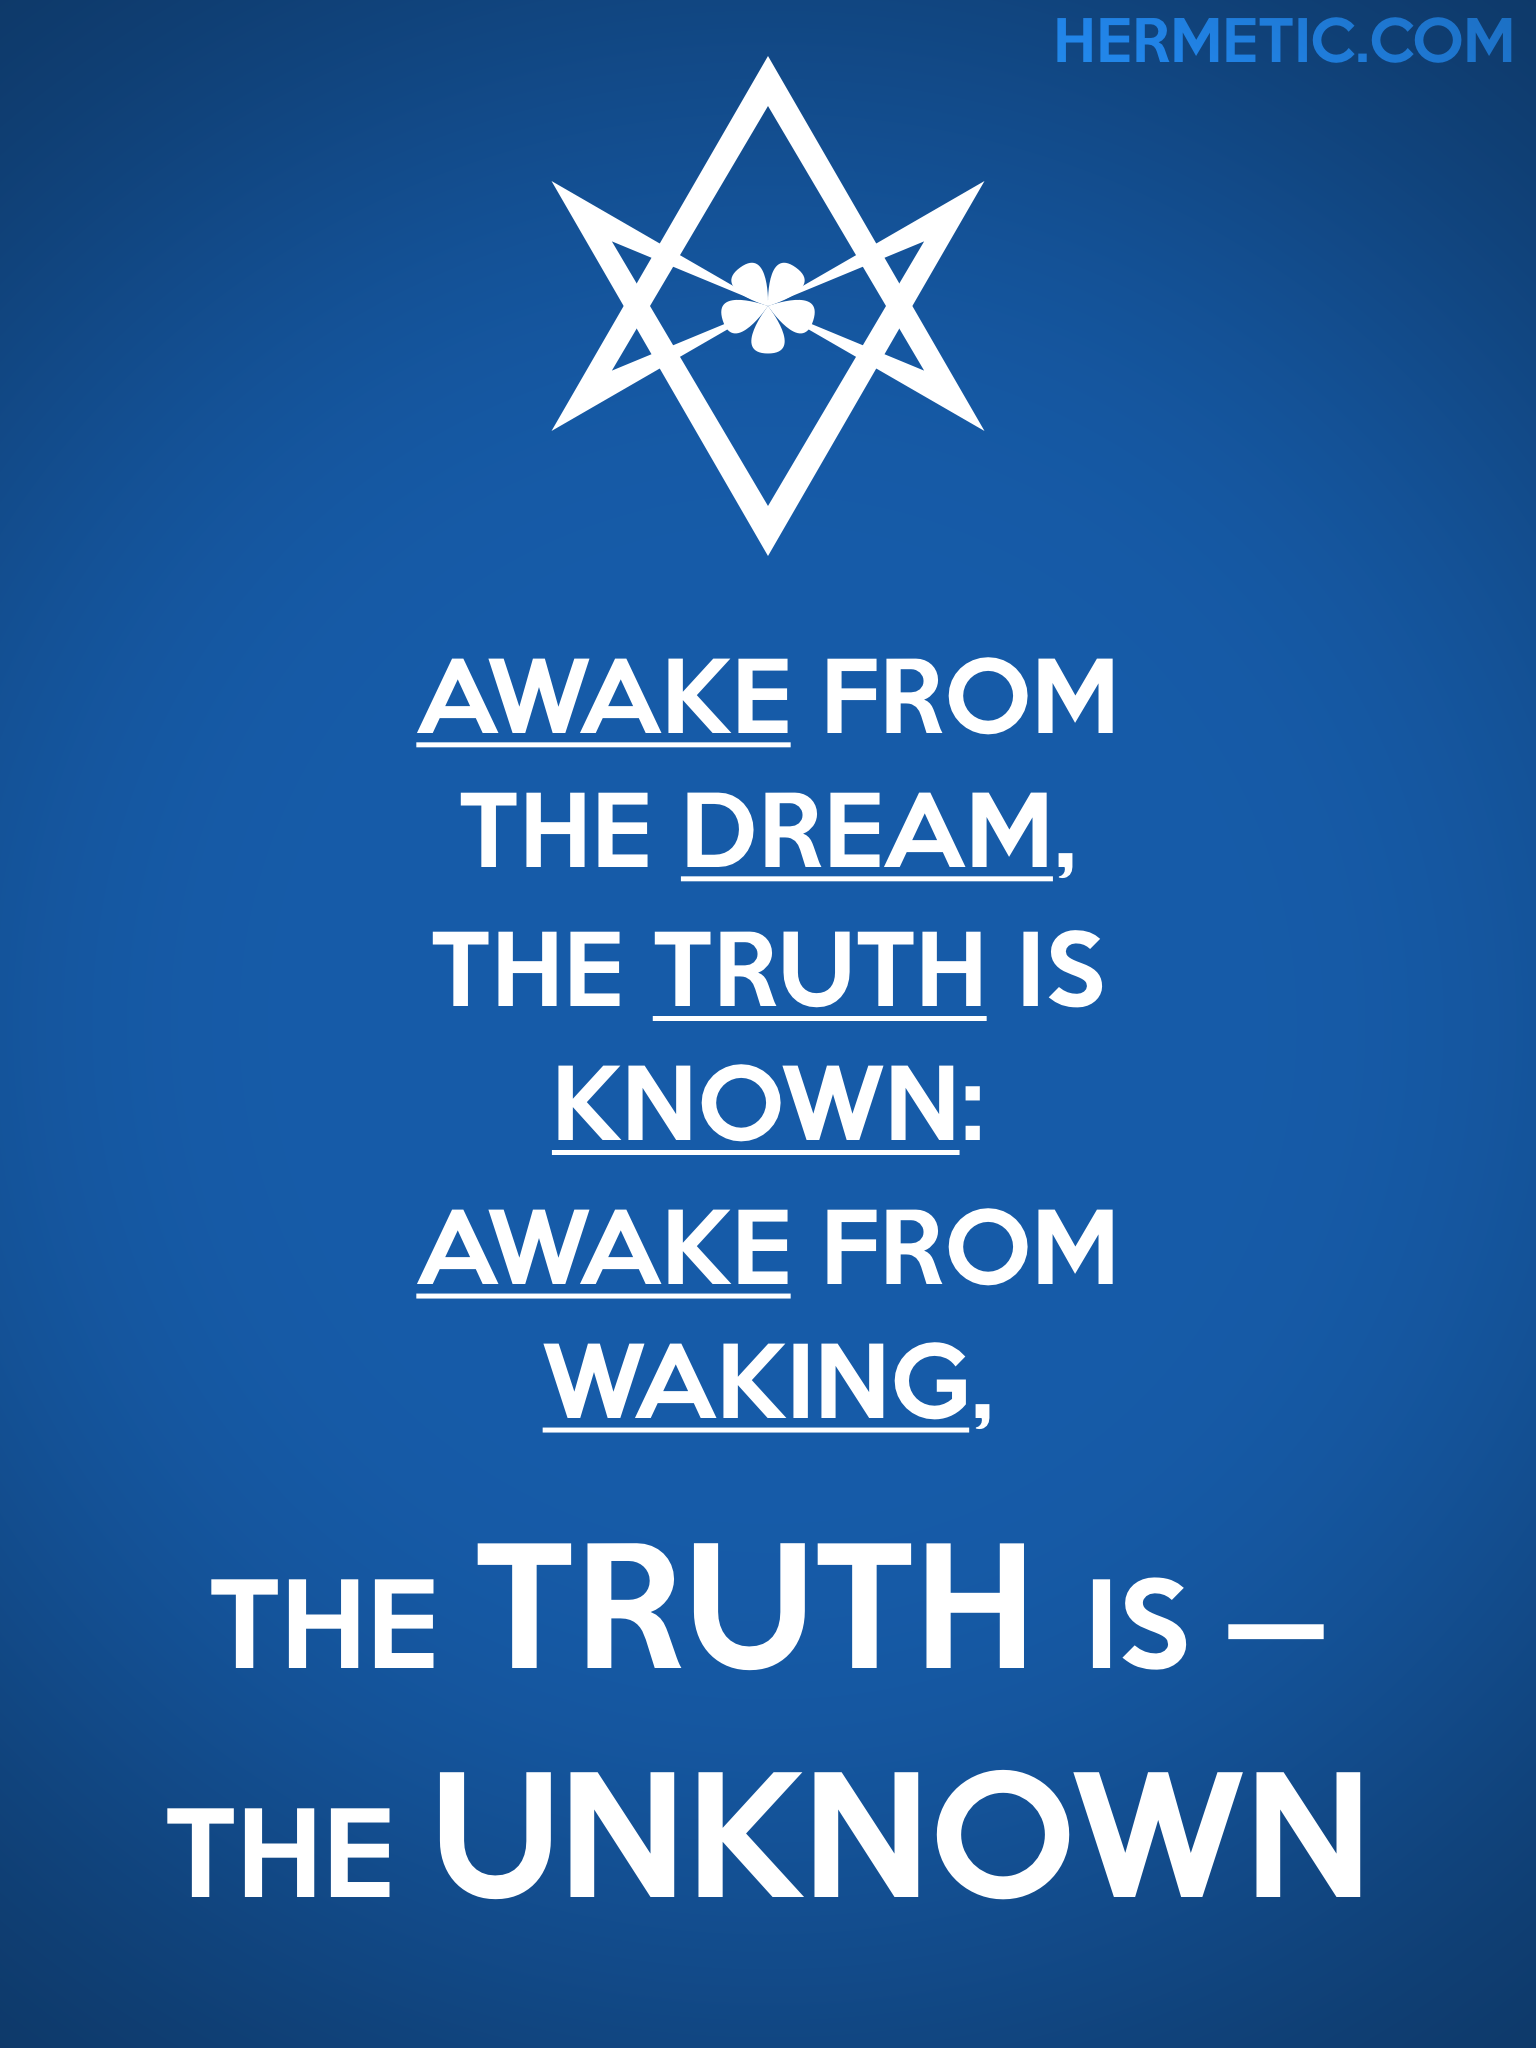 Unicursal THE TRUTH IS THE UNKNOWN Propaganda Poster from Hermetic Library Office of the Ministry of Information